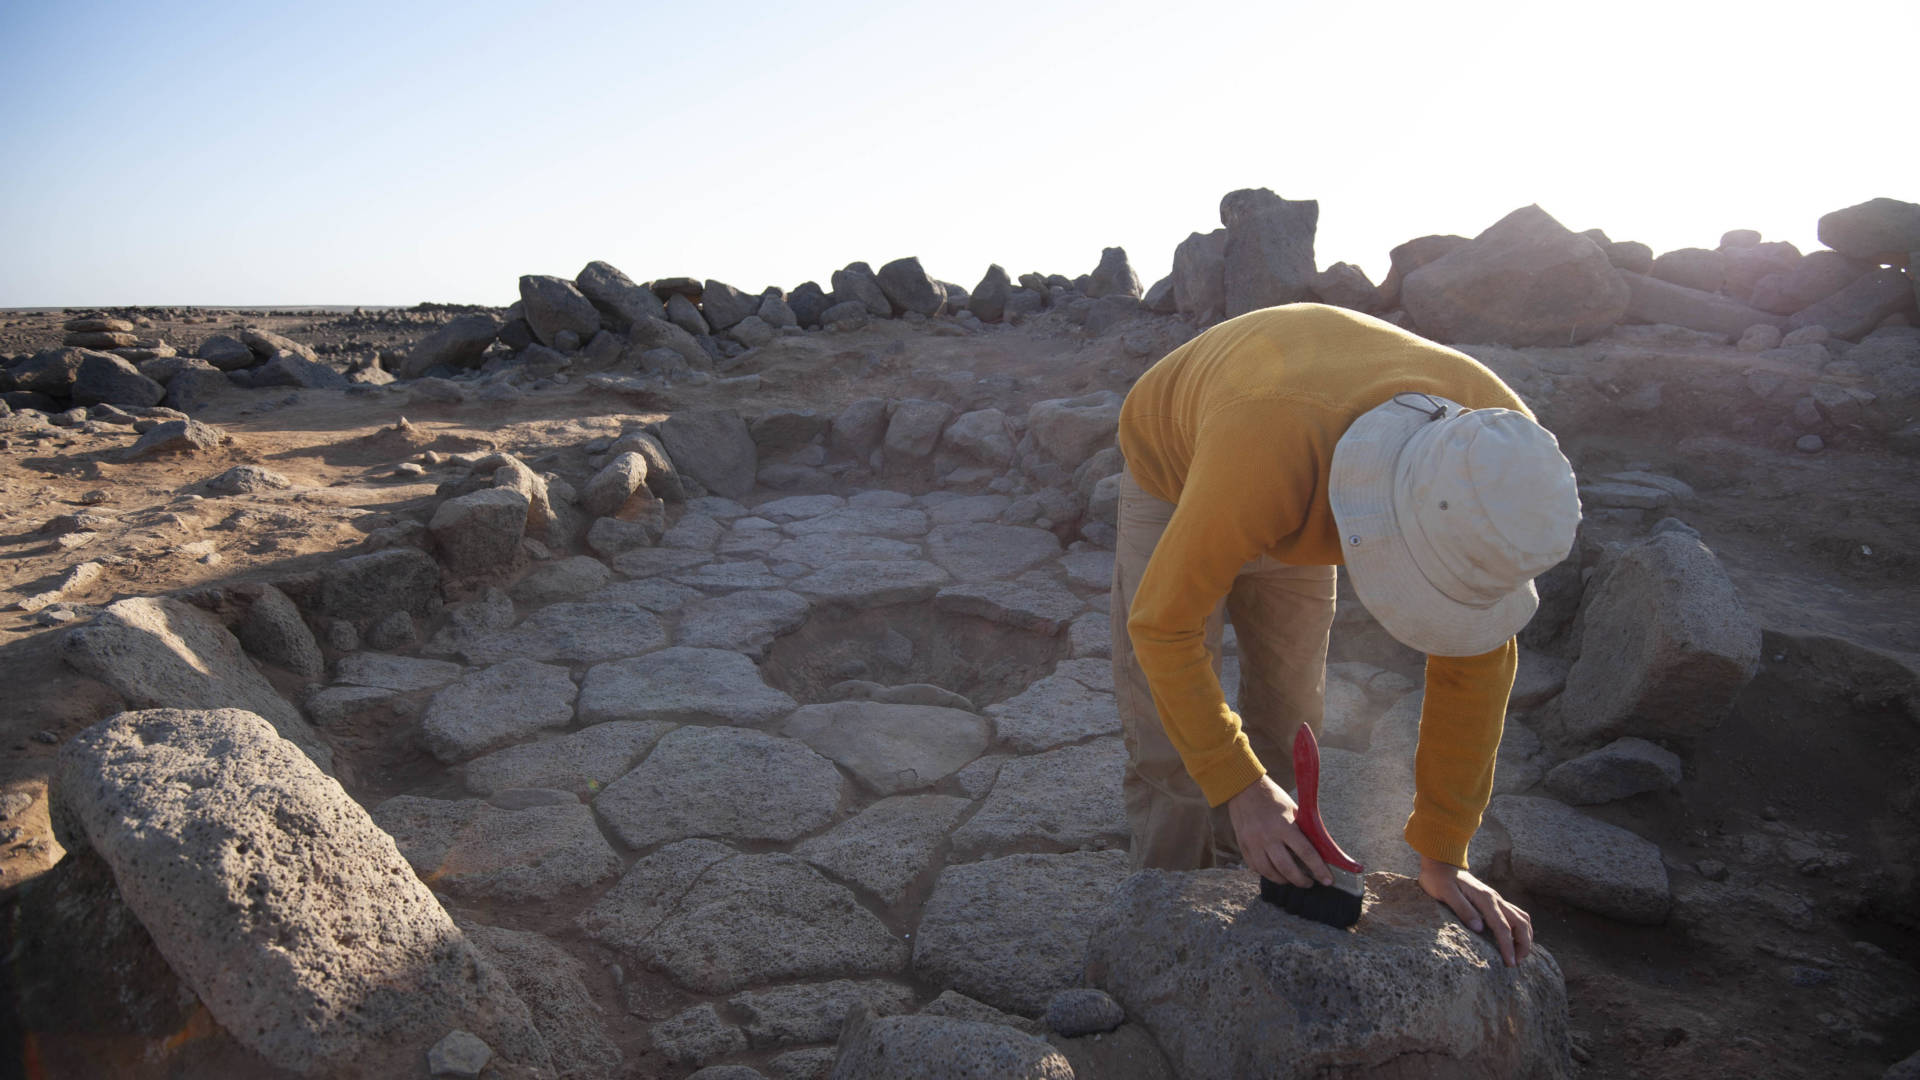 A researcher gathers breadcrumbs at an excavation site in Jordan. The 14,000-year-old crumbs suggest that ancient tribes were quite adept at food-making techniques, and developed them earlier than we had given them credit for.